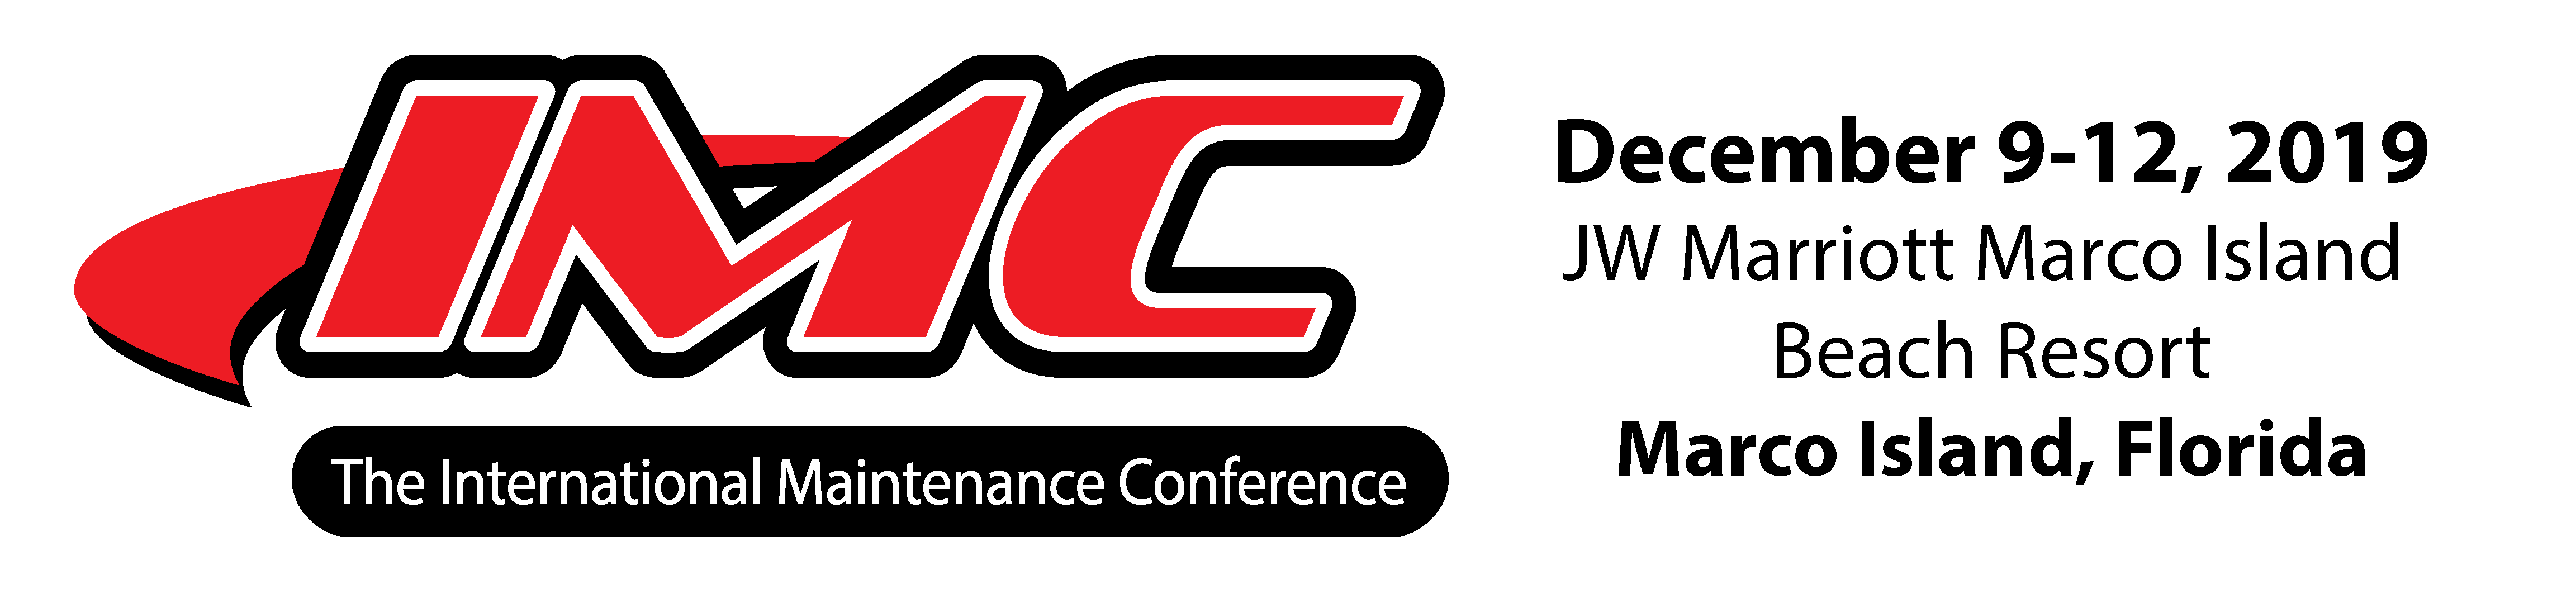 The 34th International Maintenance Conference (IMC-2019)